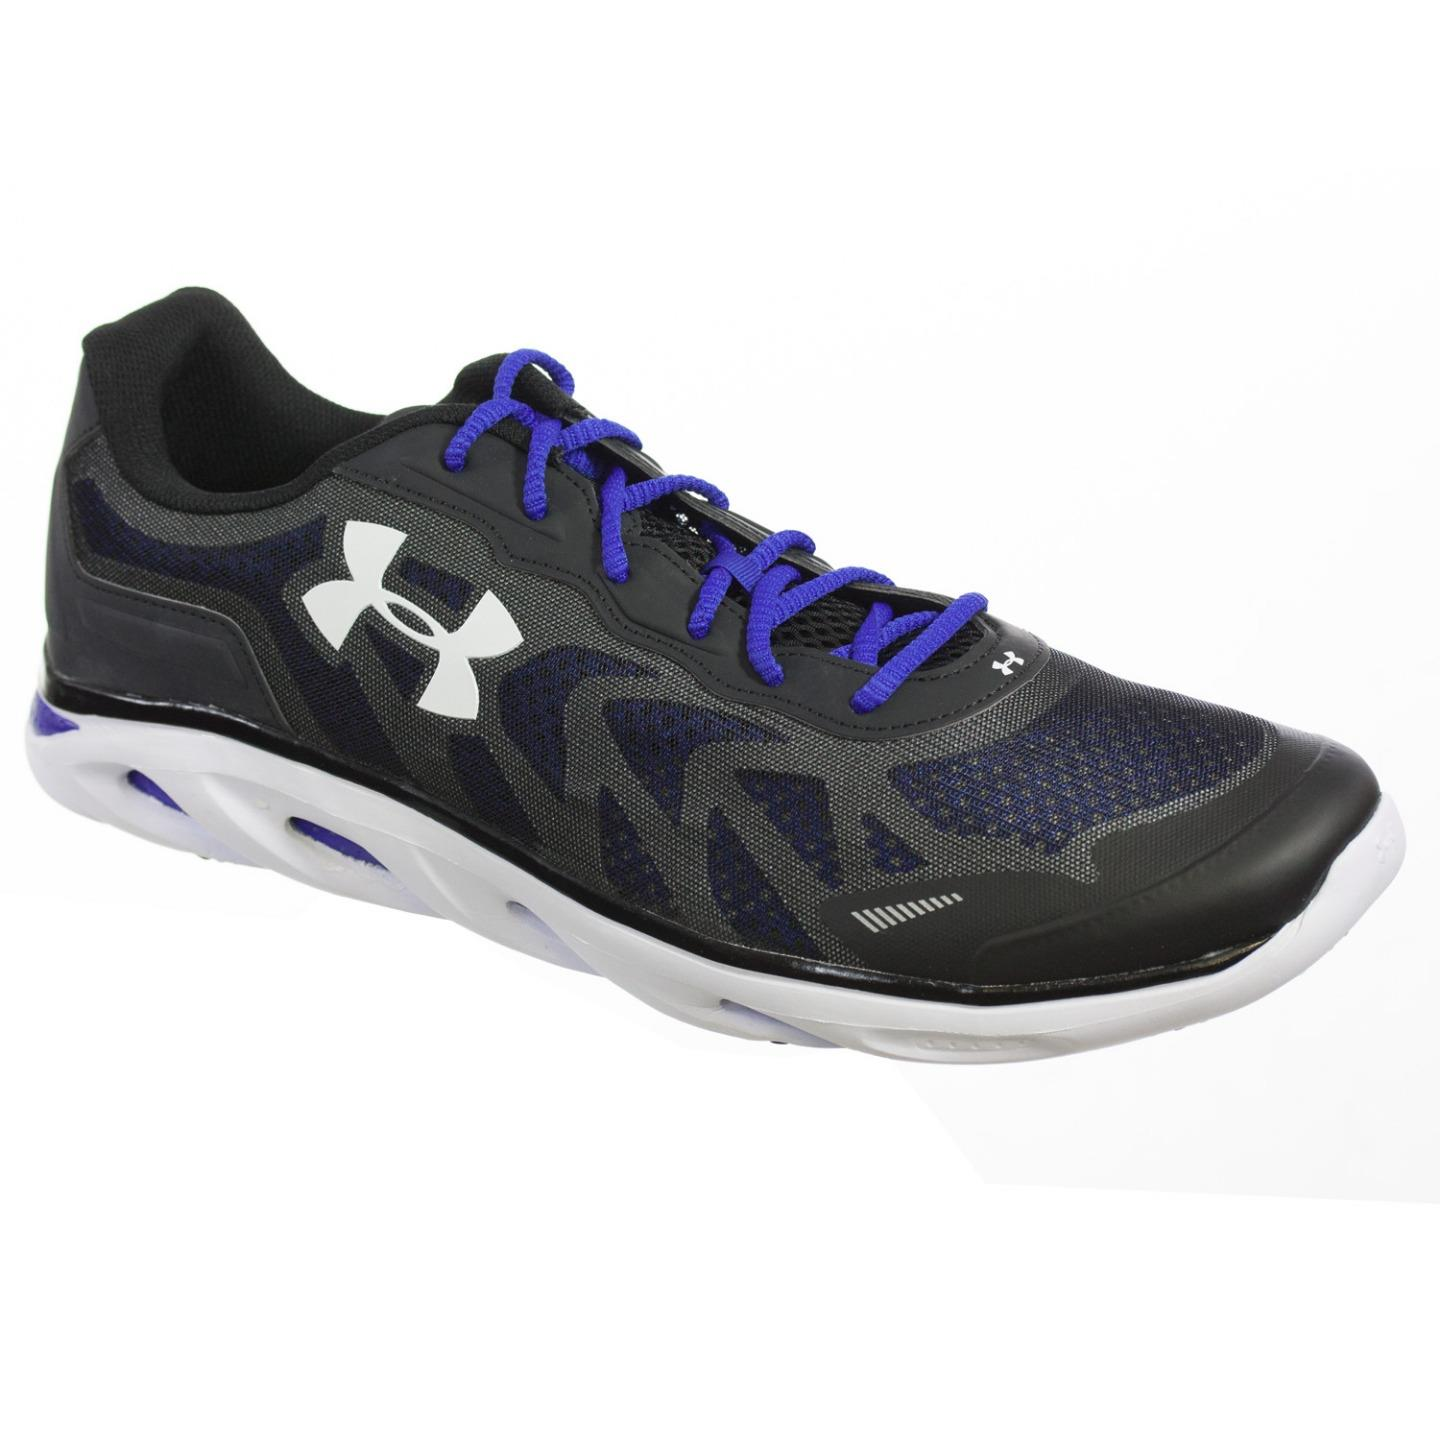 UNDER ARMOUR MENS ATHLETIC SHOES TEAM SPINE VENOM 2 BLACK WHITE ROYAL 15 M